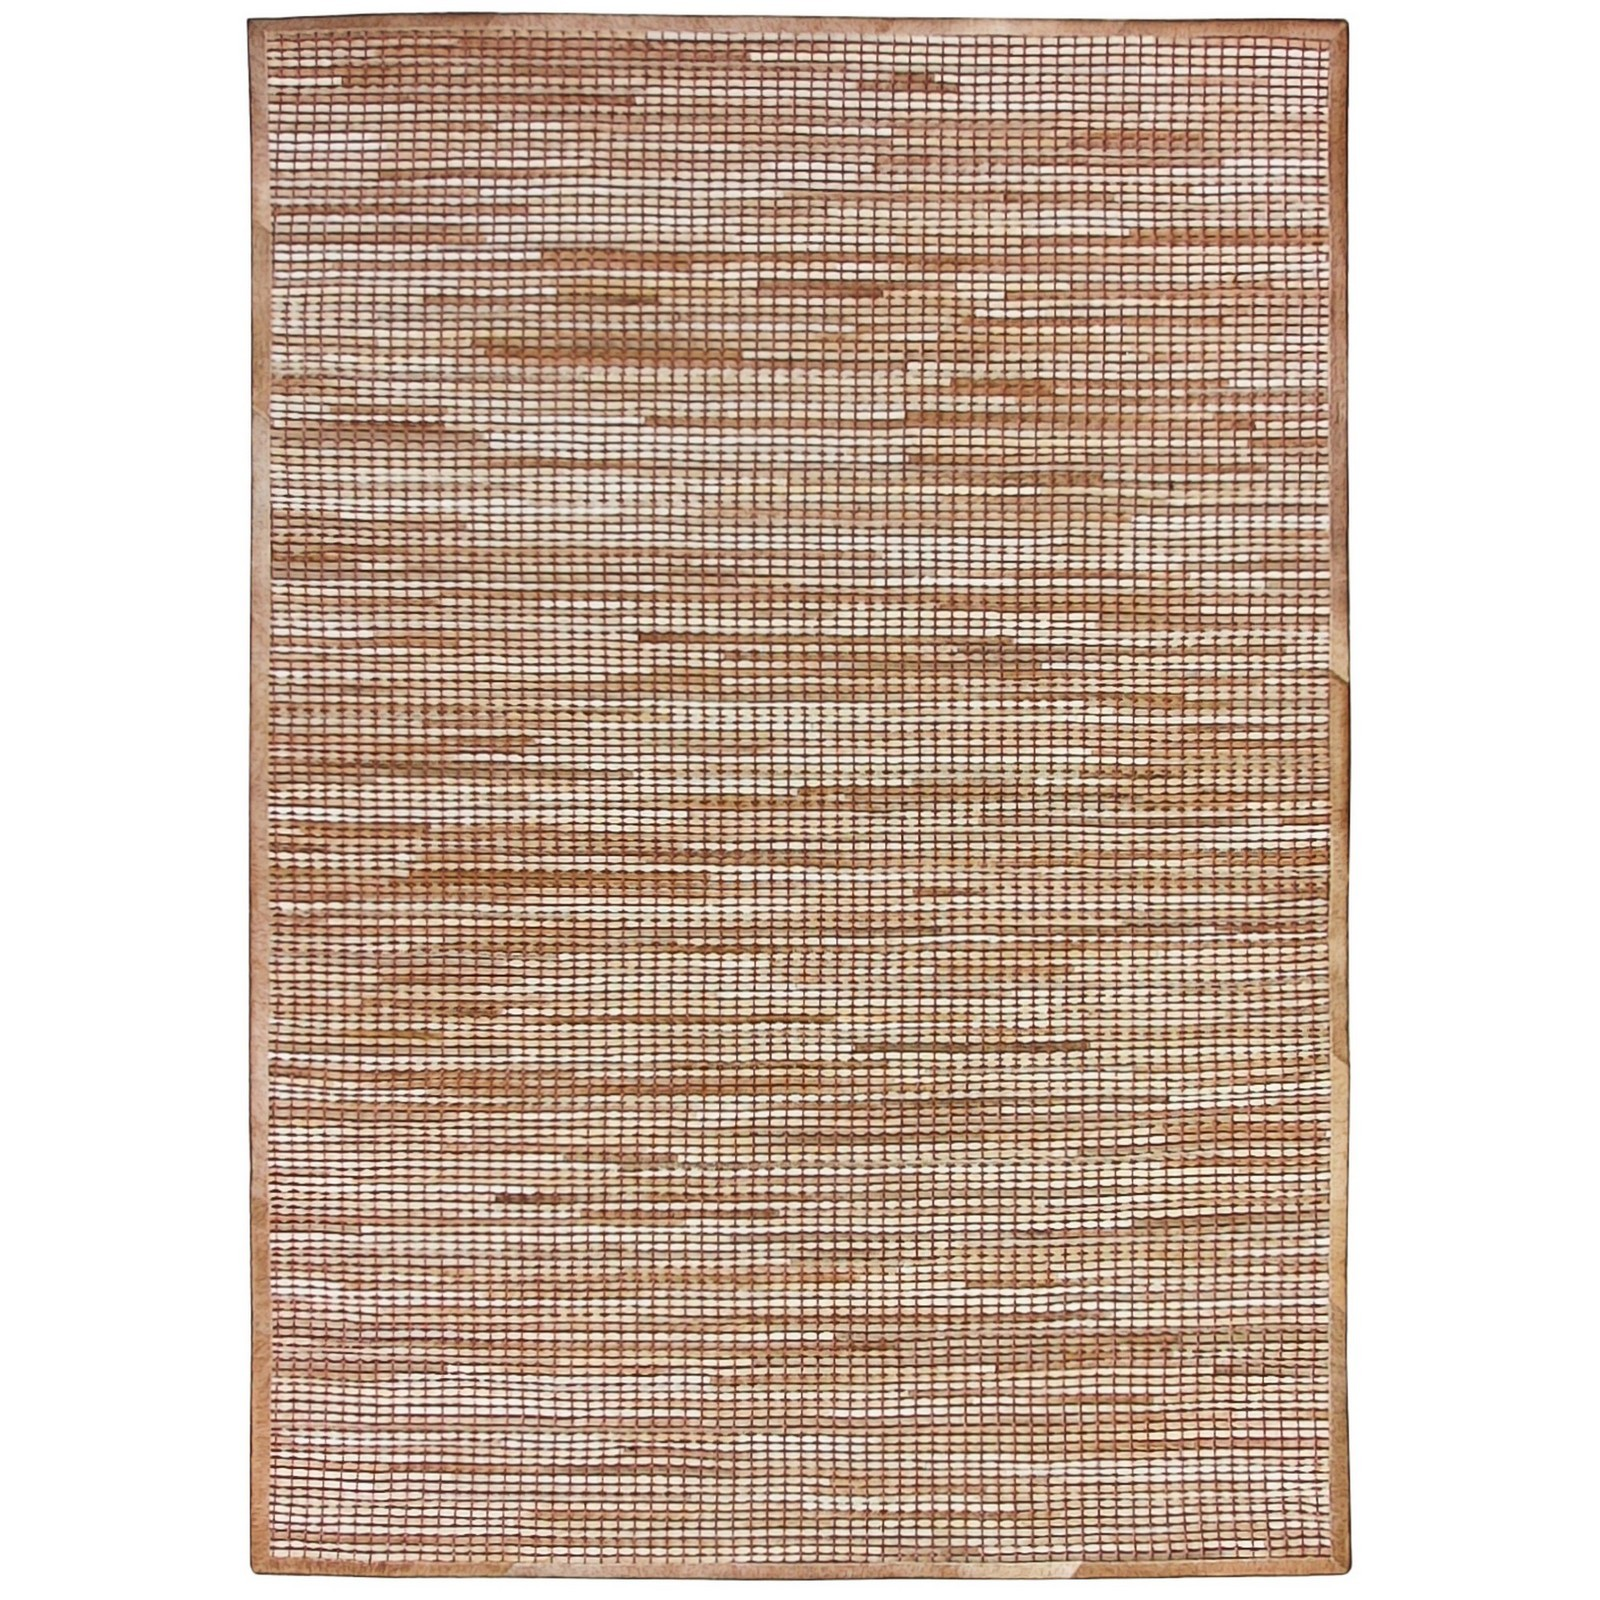 Chase Handwoven Hide & Leather Rug, 200x300cm, Natural